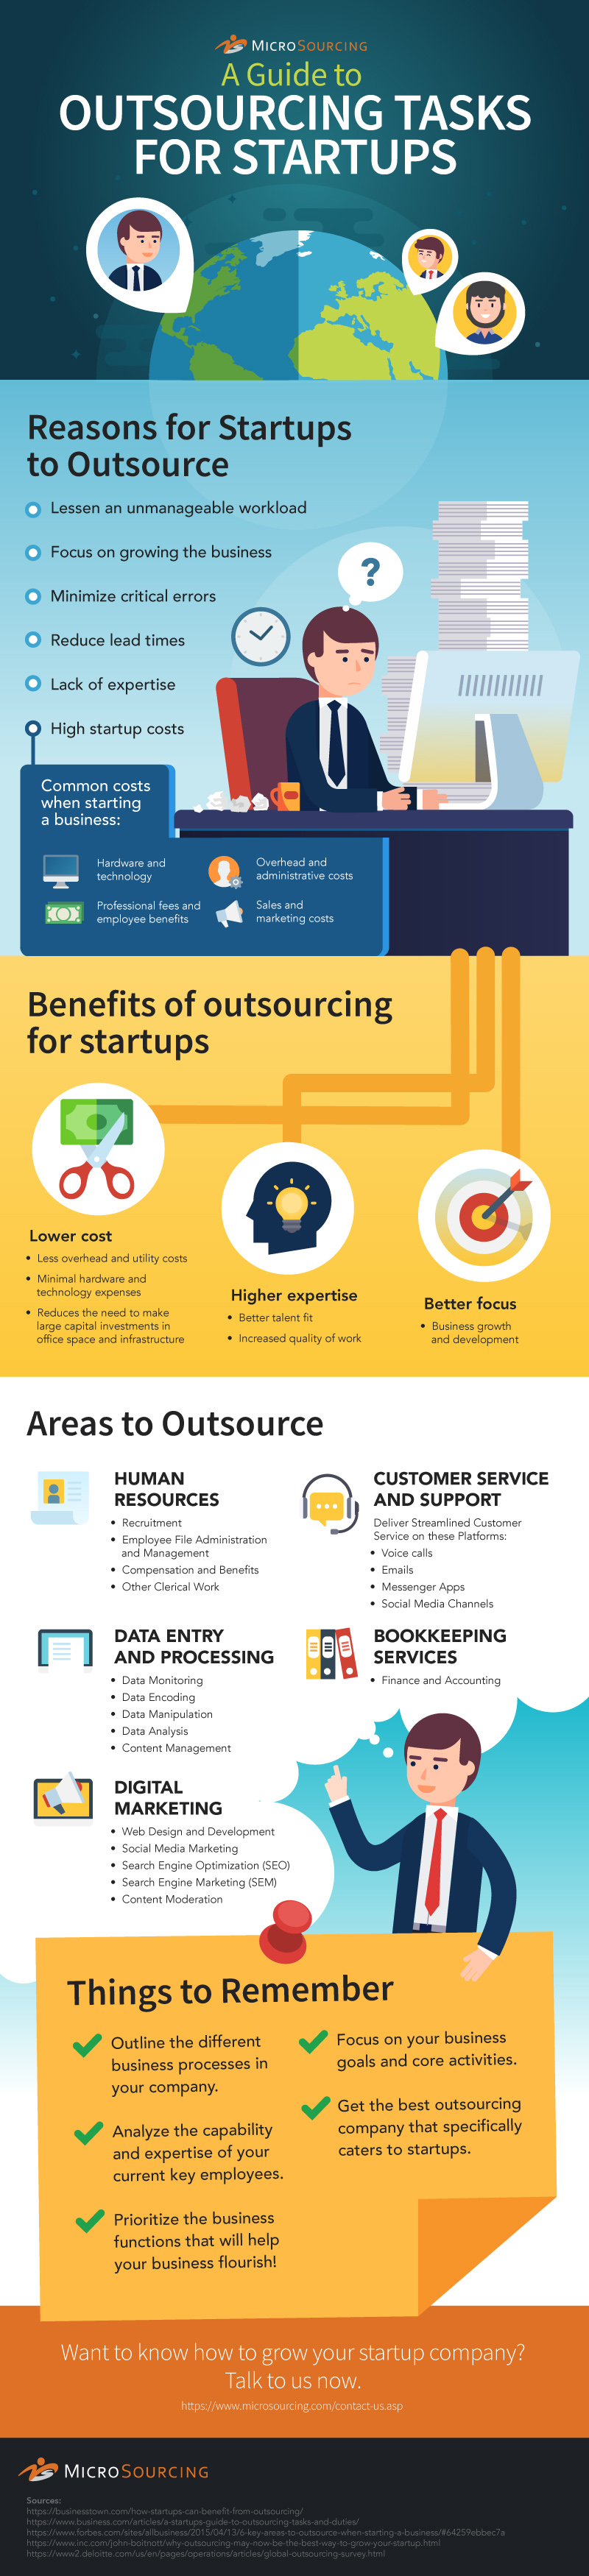 ms-a-guide-to-outsourcing-tasks-for-startupsinfographics